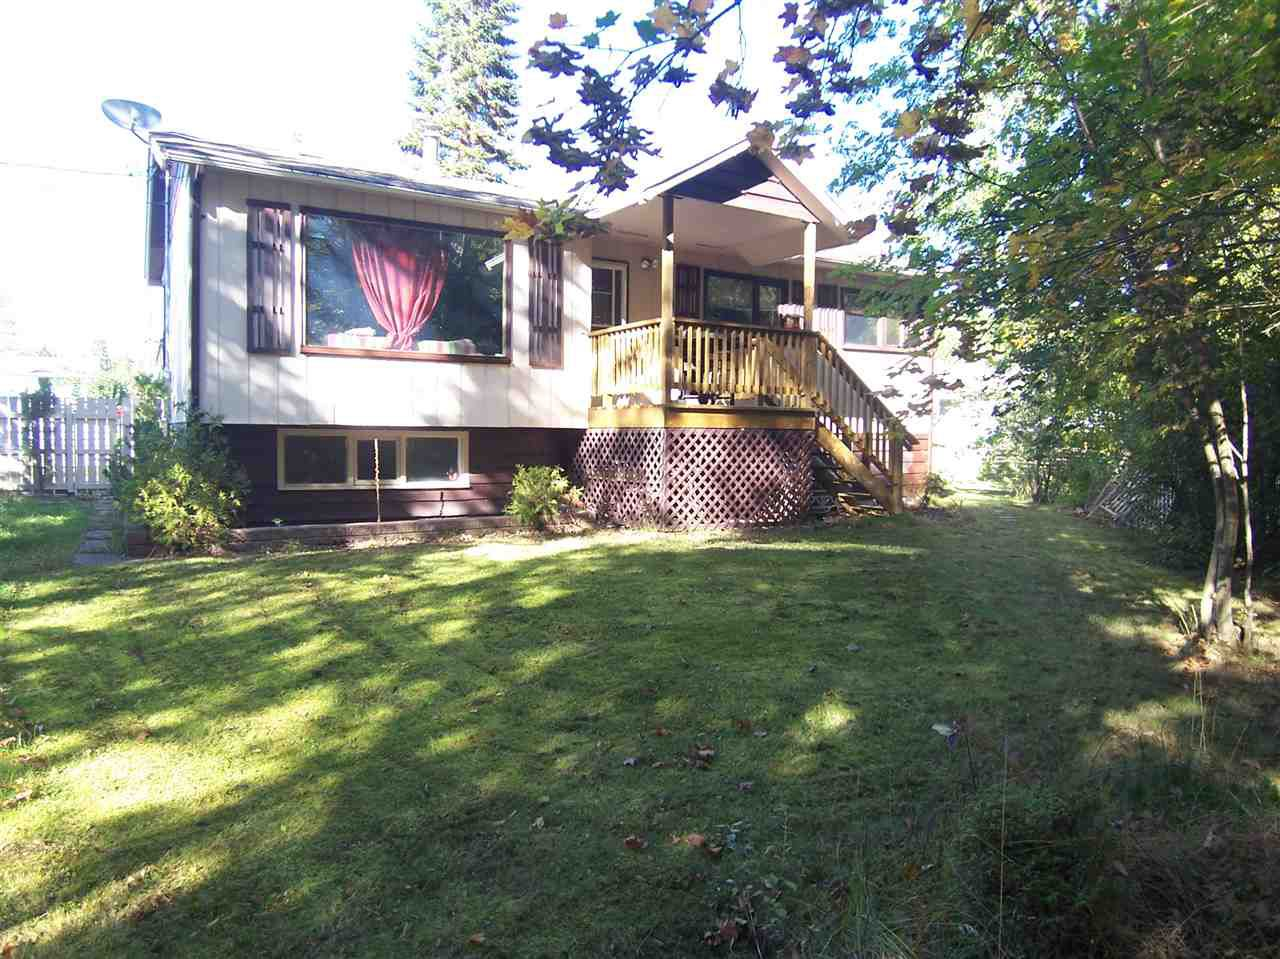 Main Photo: 731 BEAUBIEN Avenue in Quesnel: Quesnel - Town House for sale (Quesnel (Zone 28))  : MLS®# R2109317